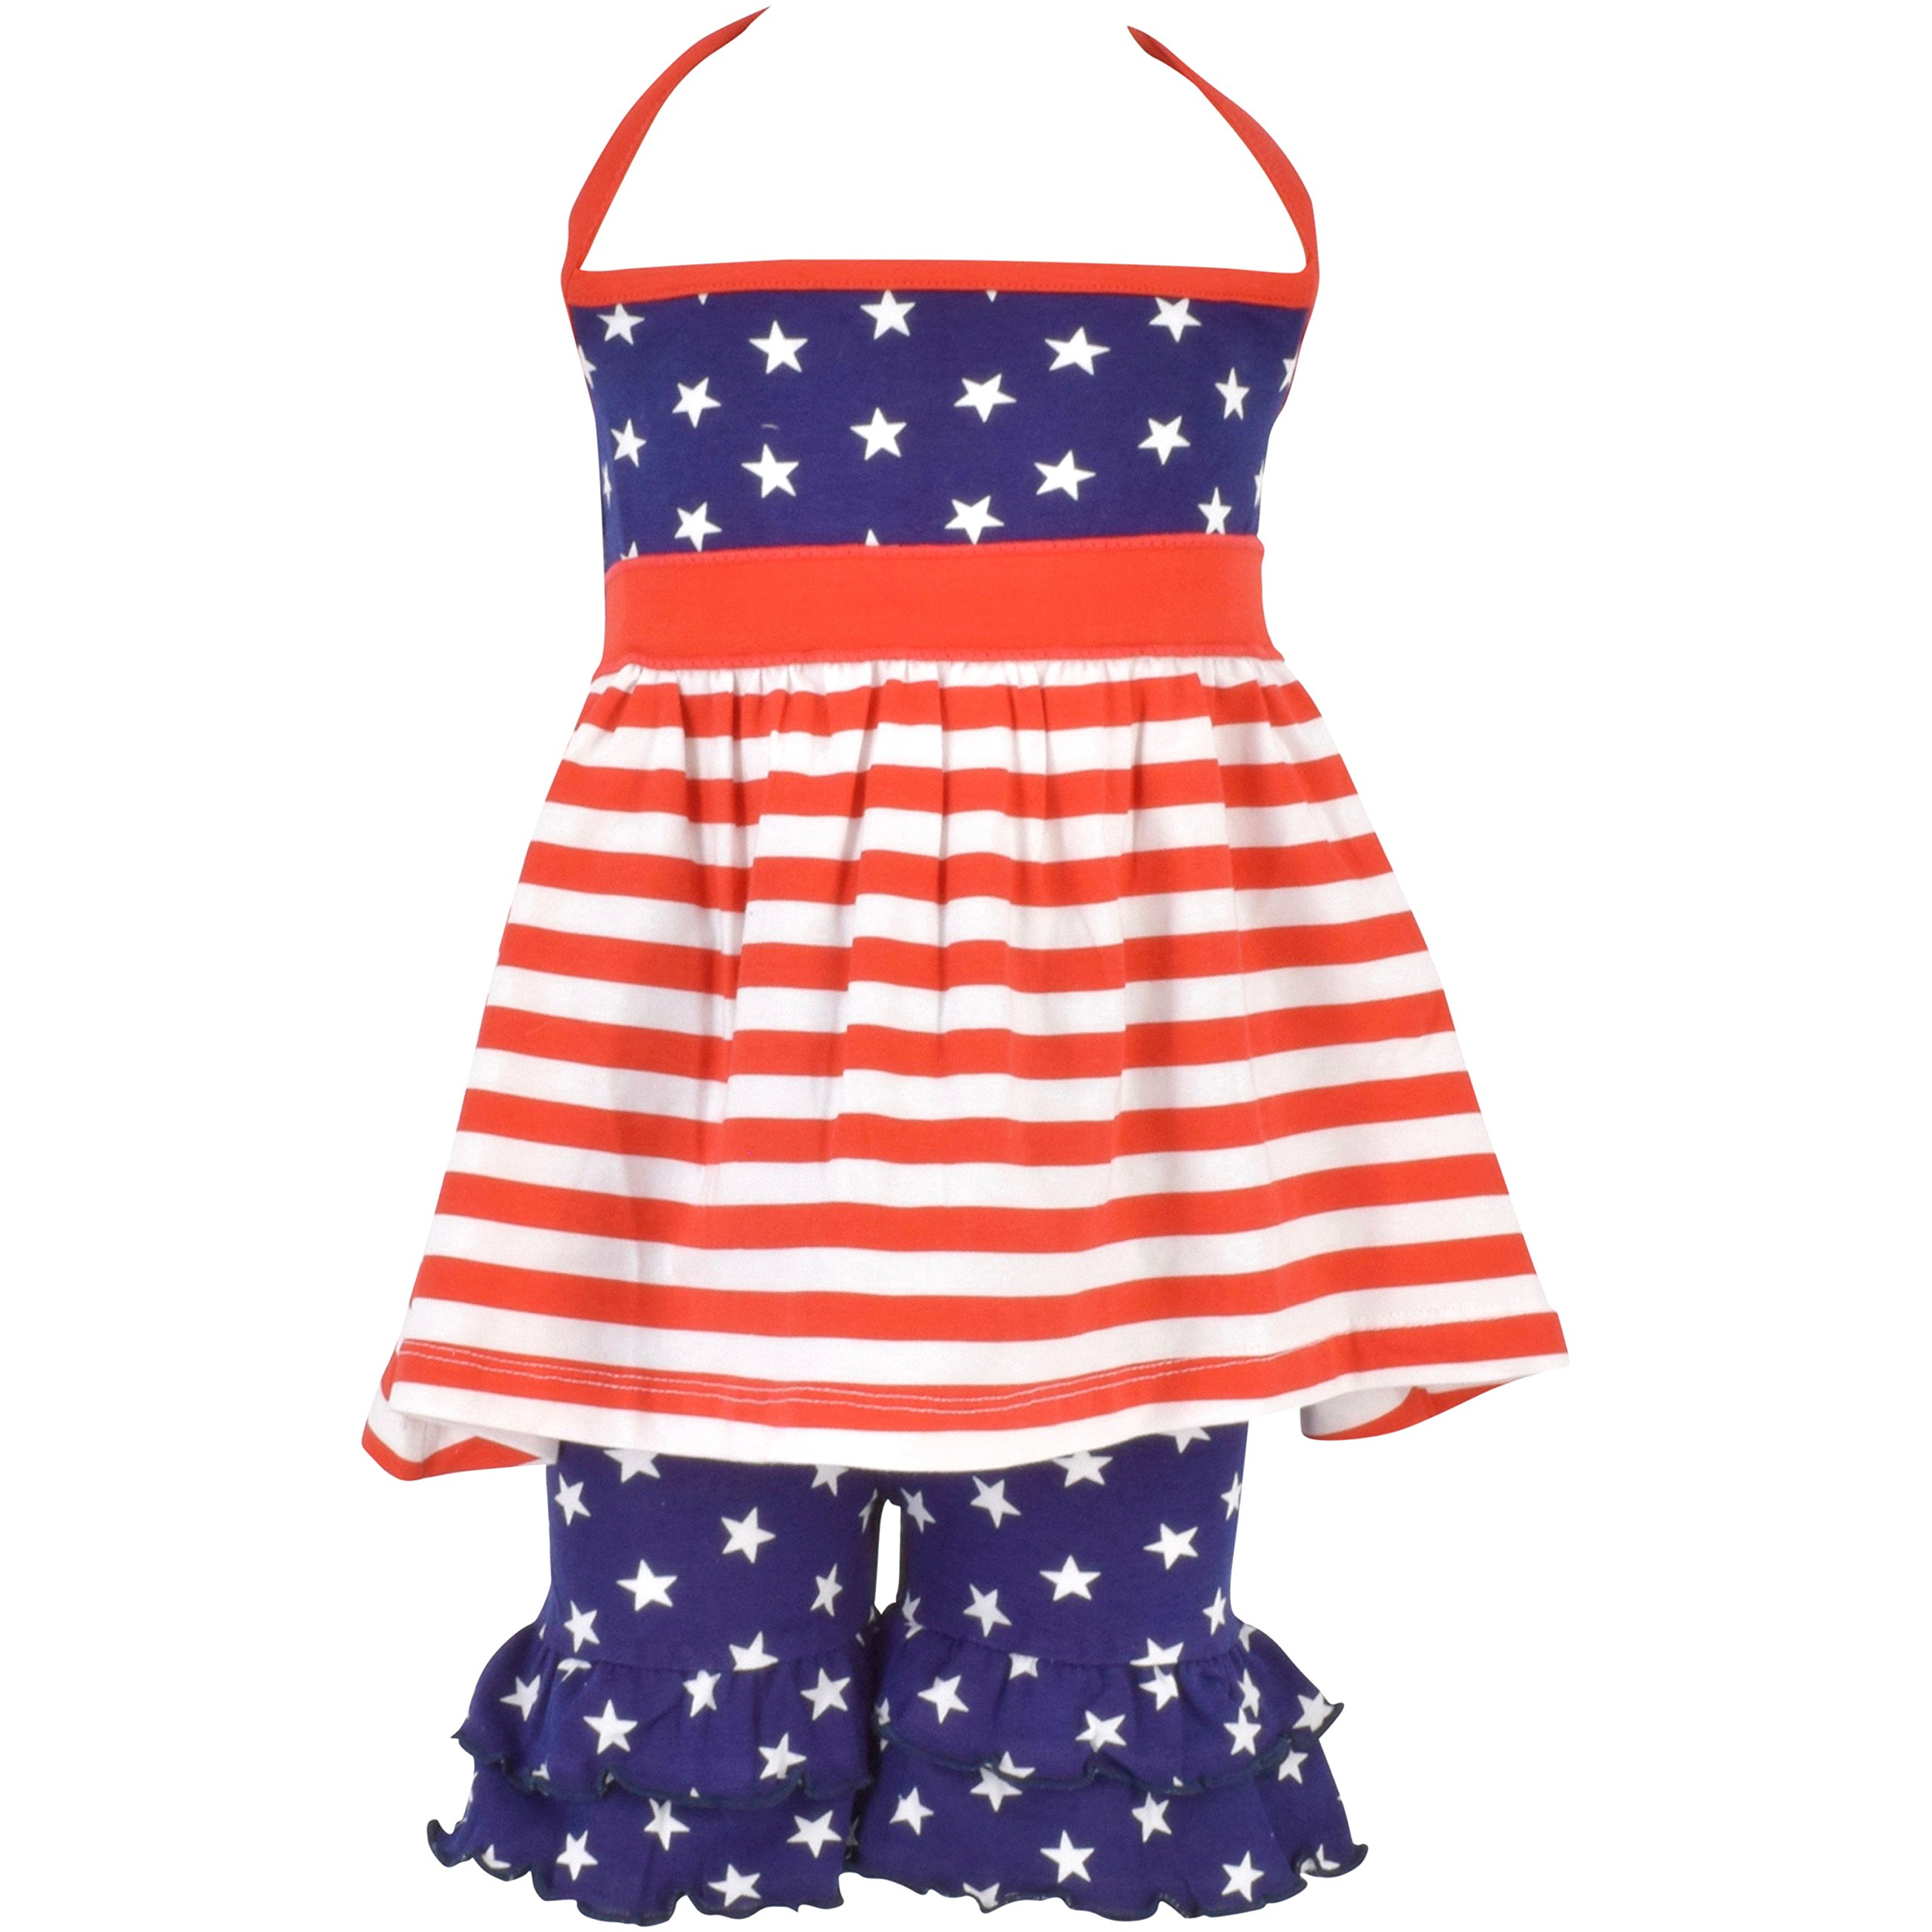 Unique Baby Girls Patriotic 4th of July Halter Top Summer Outfit (8, Red)